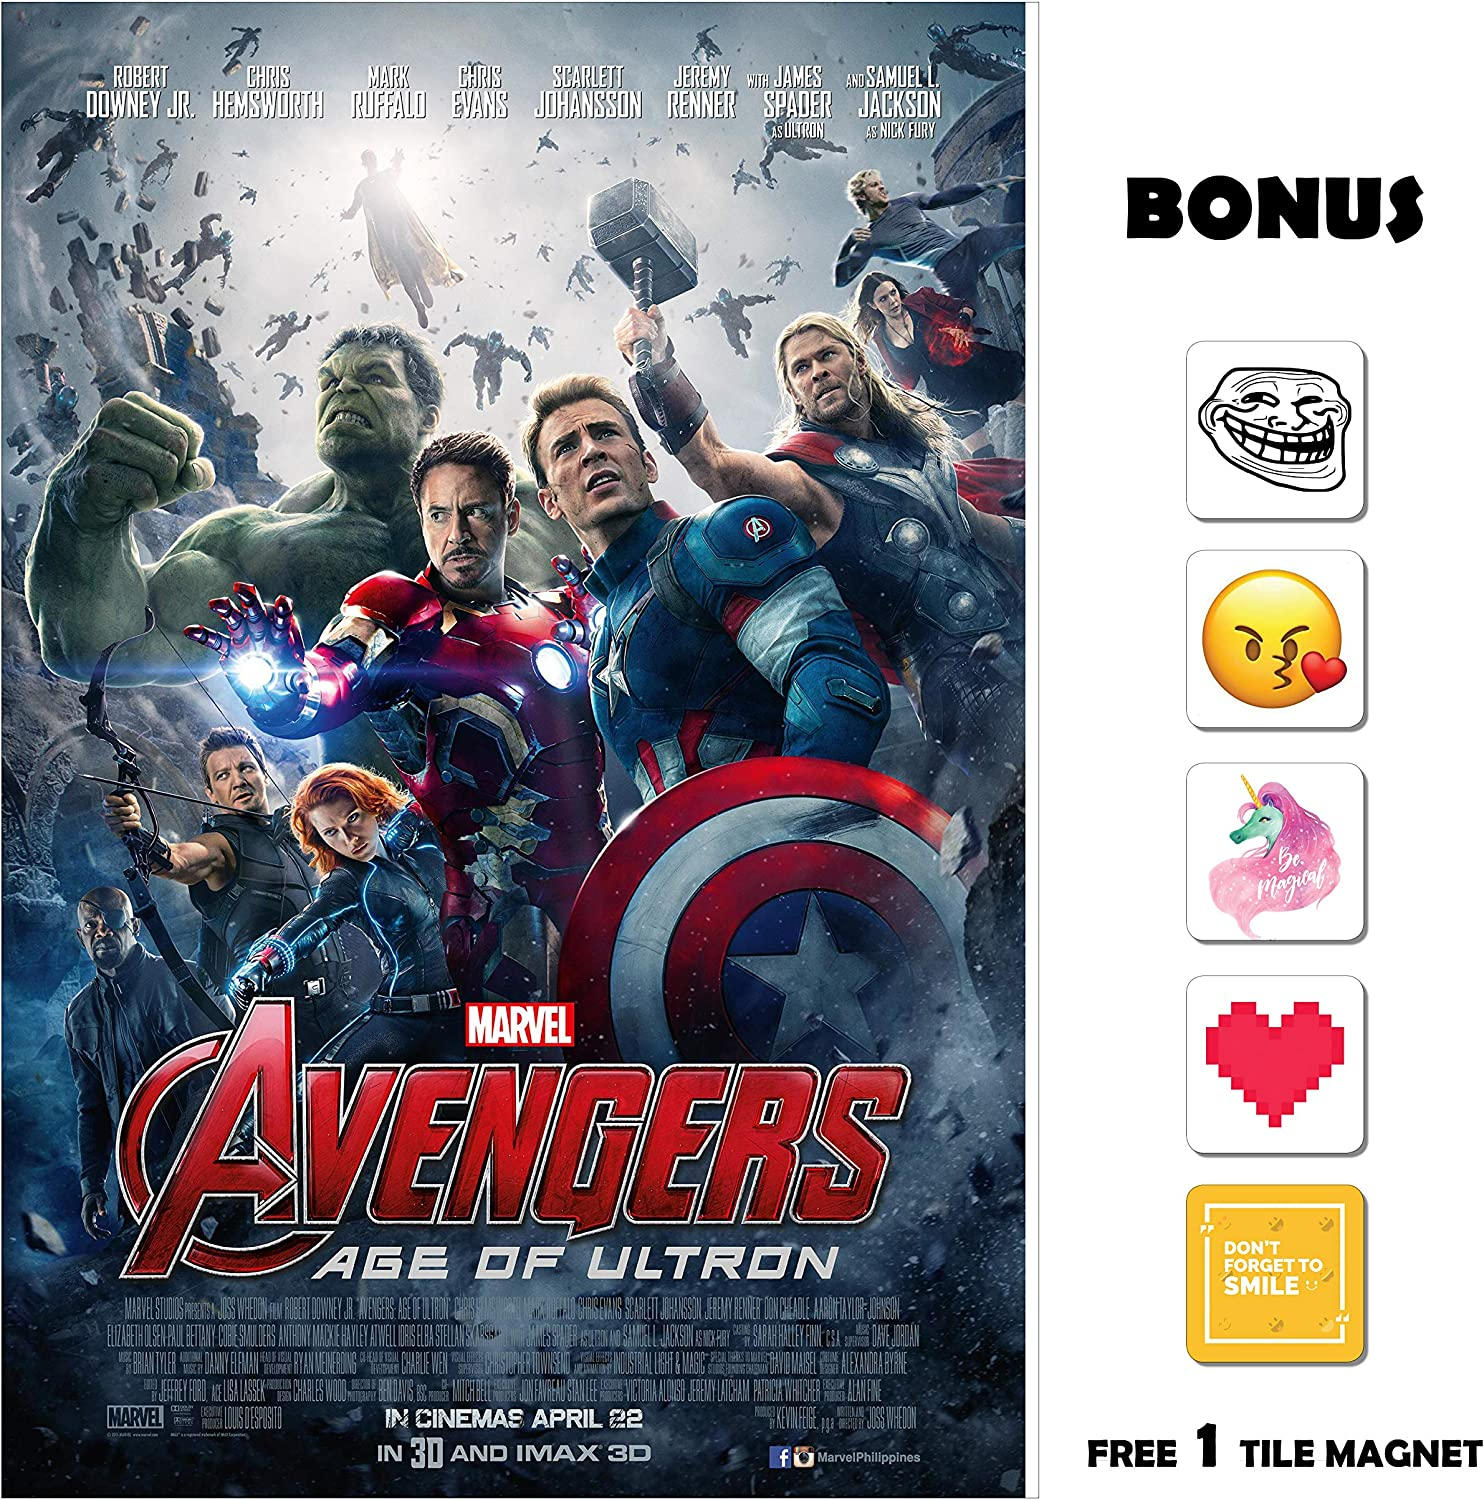 Amazon Com Movie Poster Avengers Age Of Ultron 2015 13 In X 19 In Borderless Free 1 Tile Magnet Posters Prints